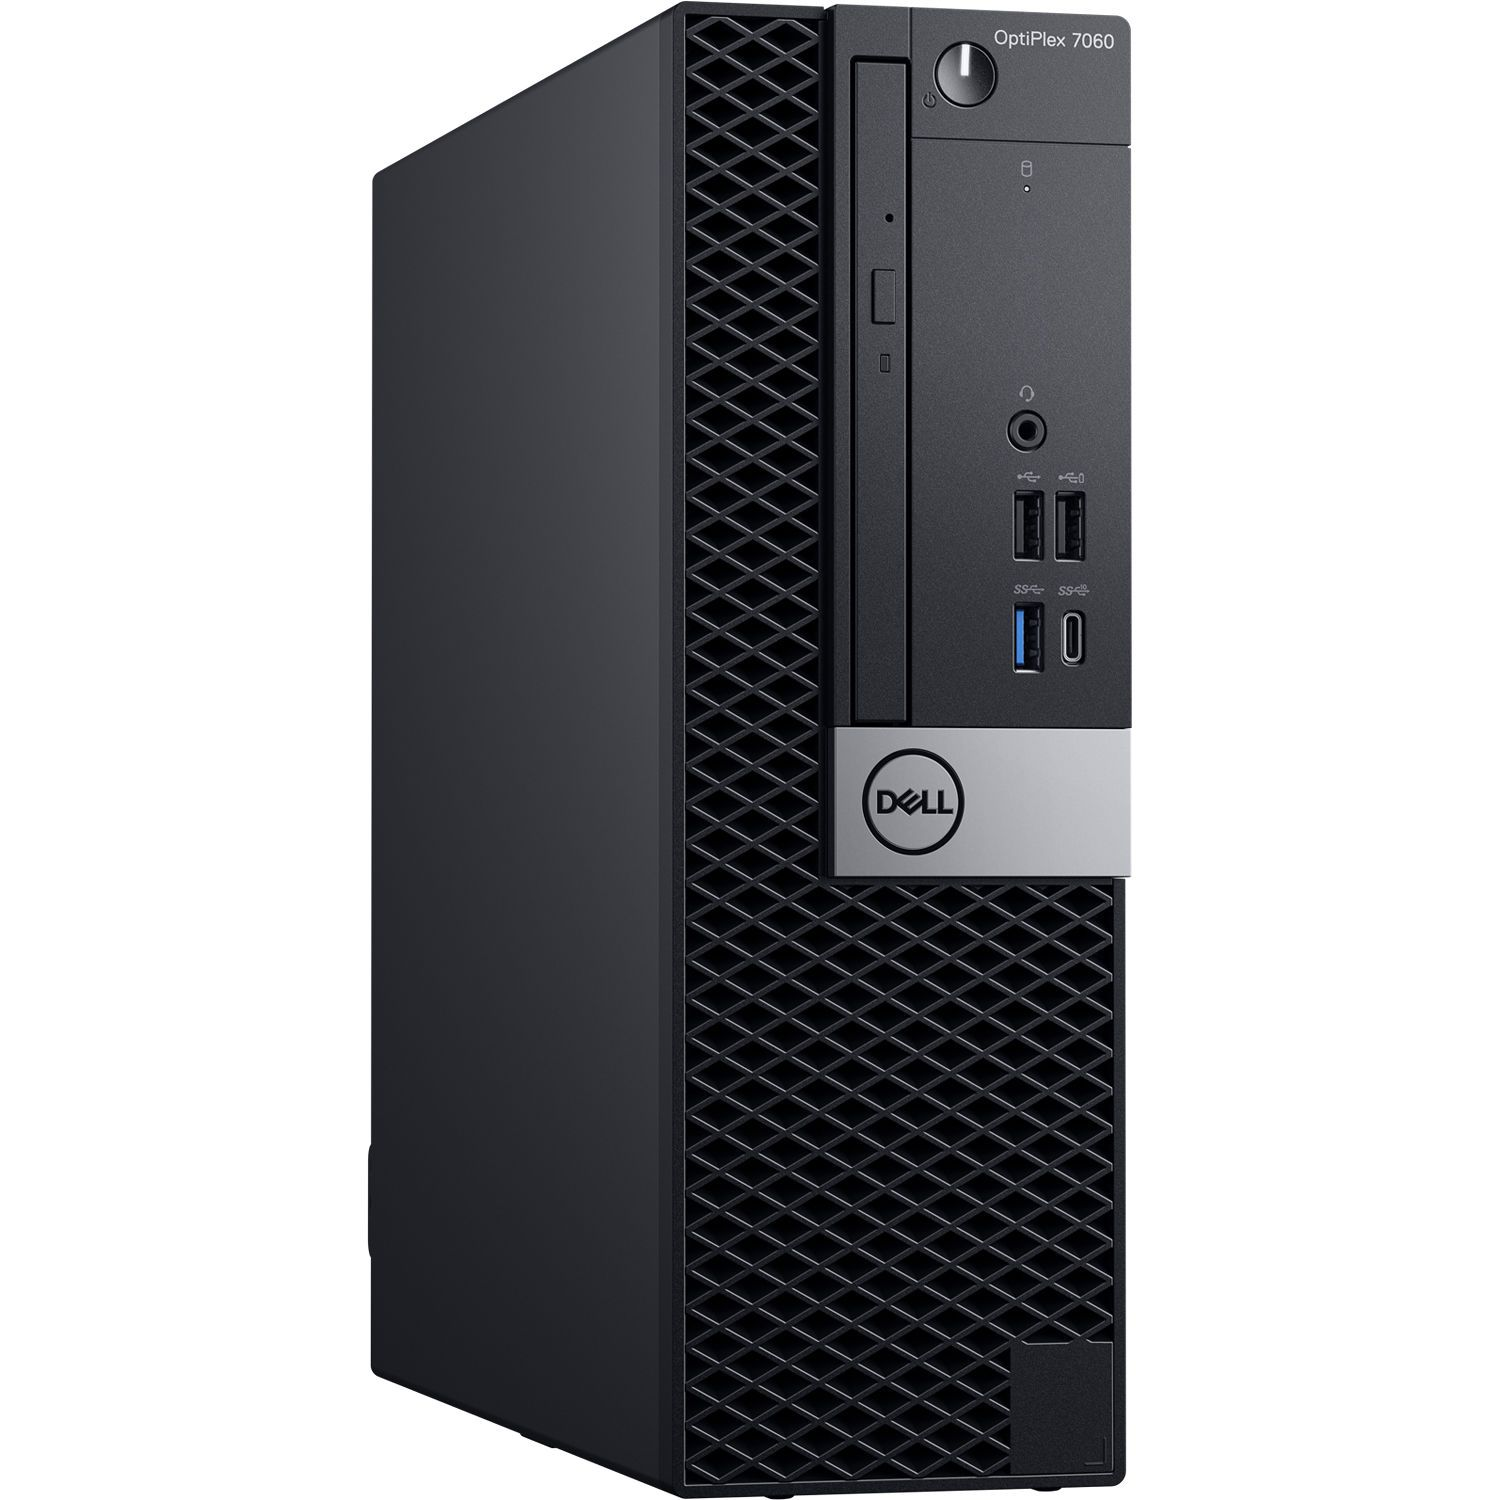 Microcomputador Dell Optiplex Small 3070 i3-9100| 4GB DDR4| HD 500GB| DVD| Tec+mse| Linux